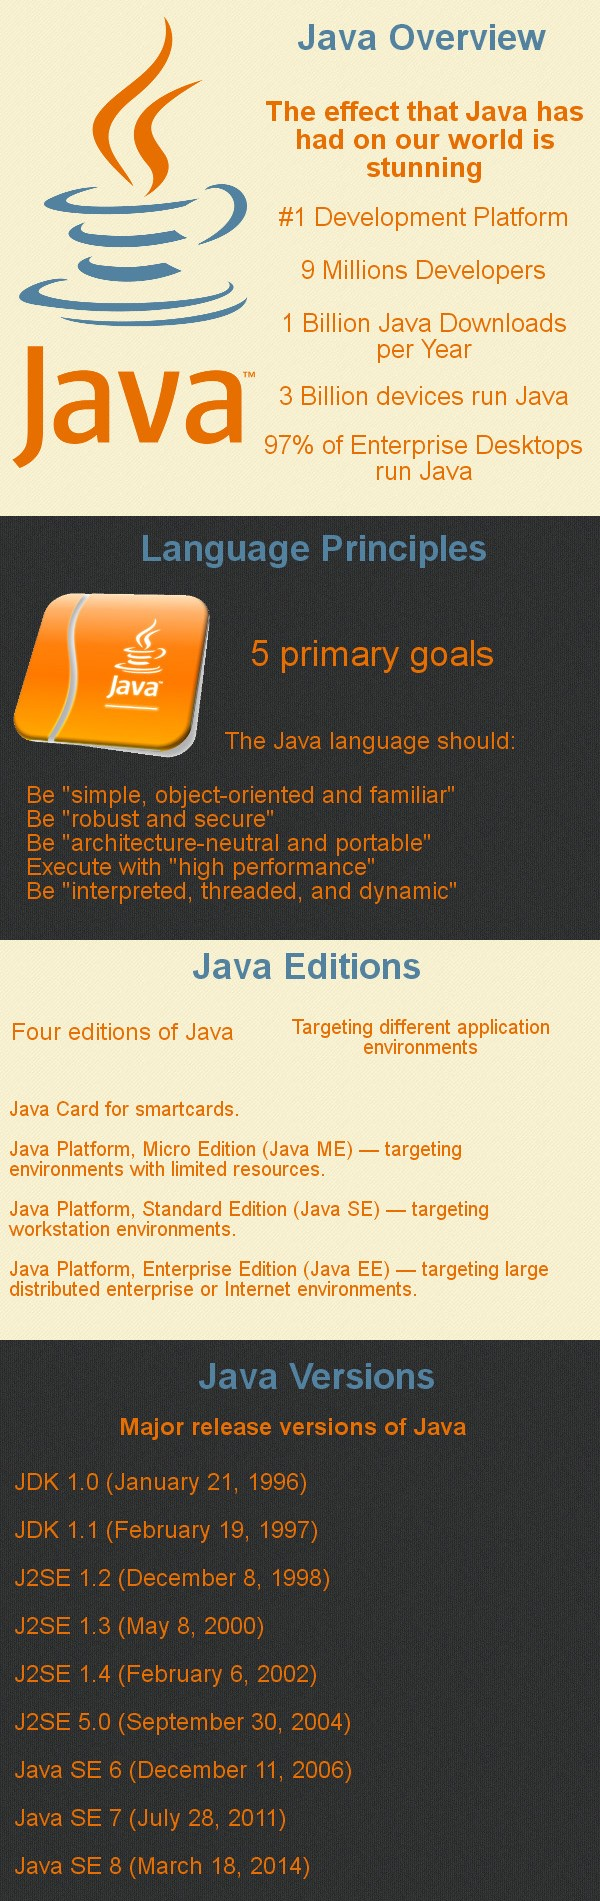 jcg-java-history-facts